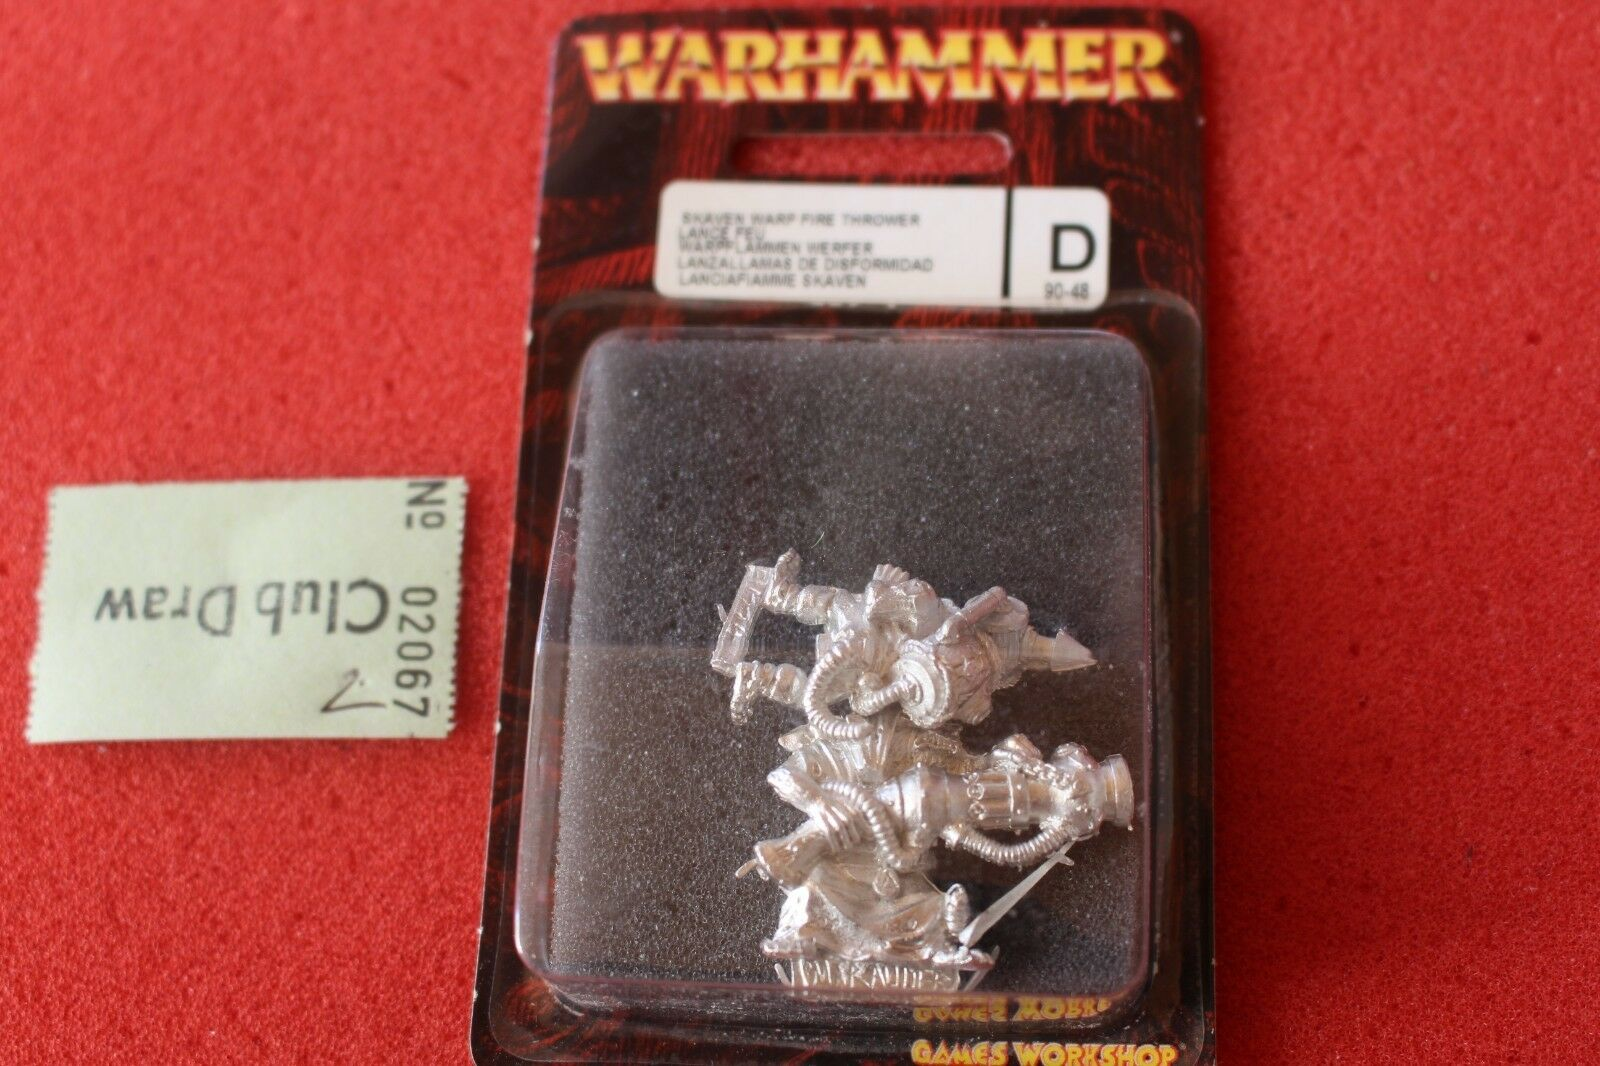 Games Workshop Warhammer Skaven Warp Fire Thrower Cannon Metal BNIB New GW OOP